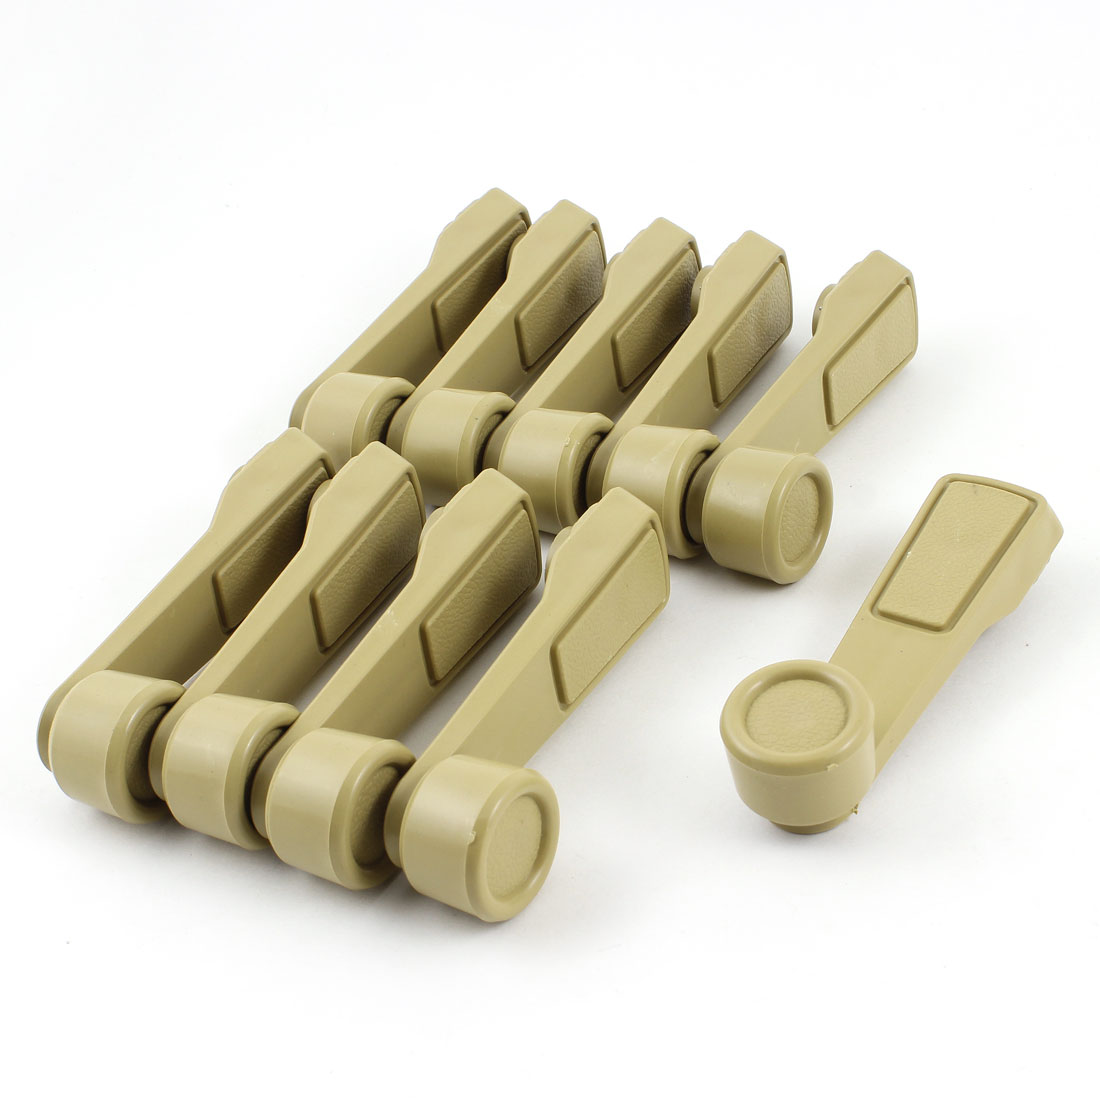 10 Pcs Truck Car Door Window Hand Crank Winder Handles Khaki